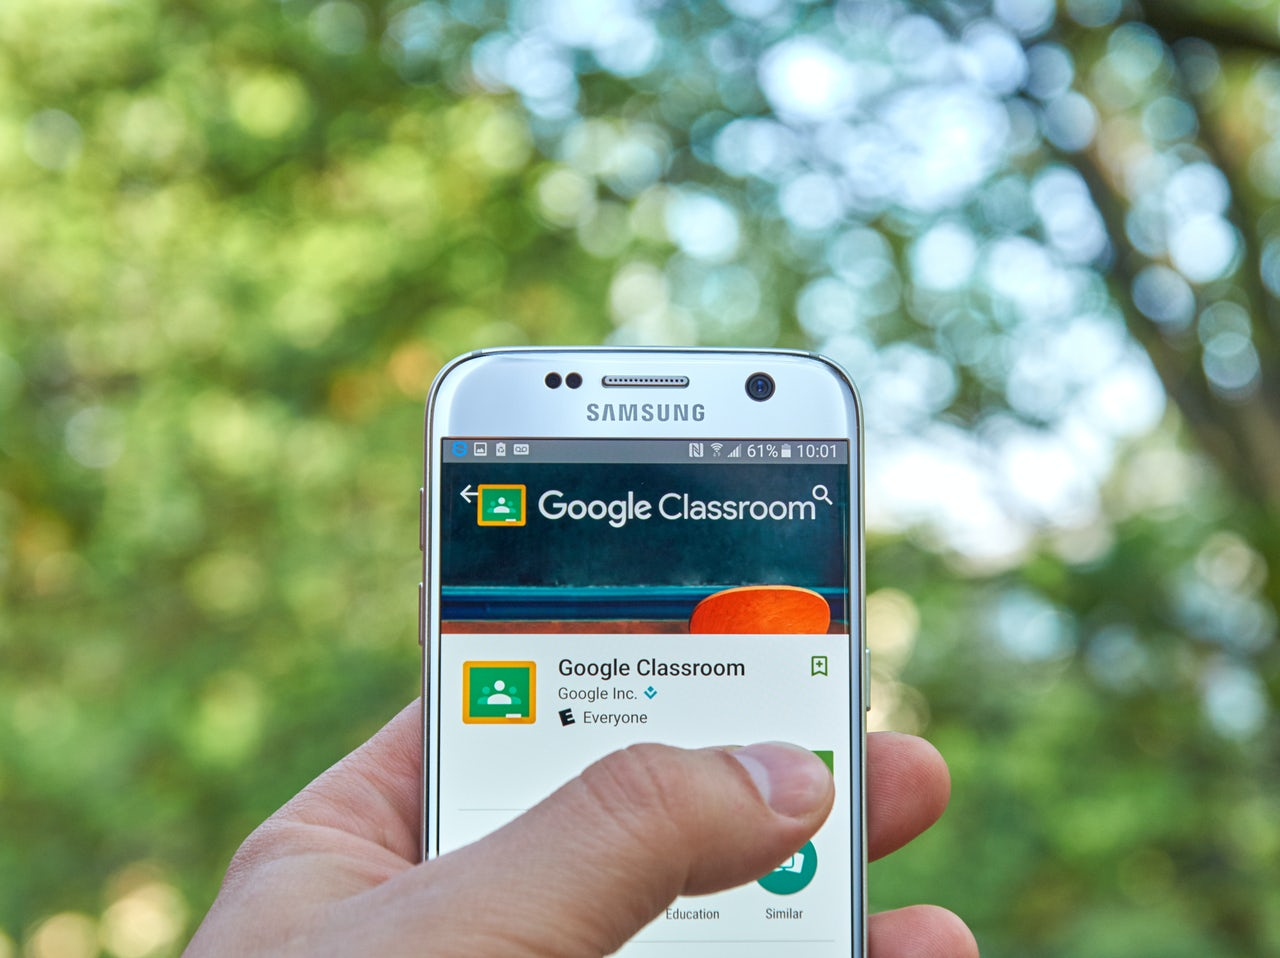 The Google Classroom app makes teachers' and administrations' lives very easy, but give Google a lot of access to kids who then can't learn not to trust it.